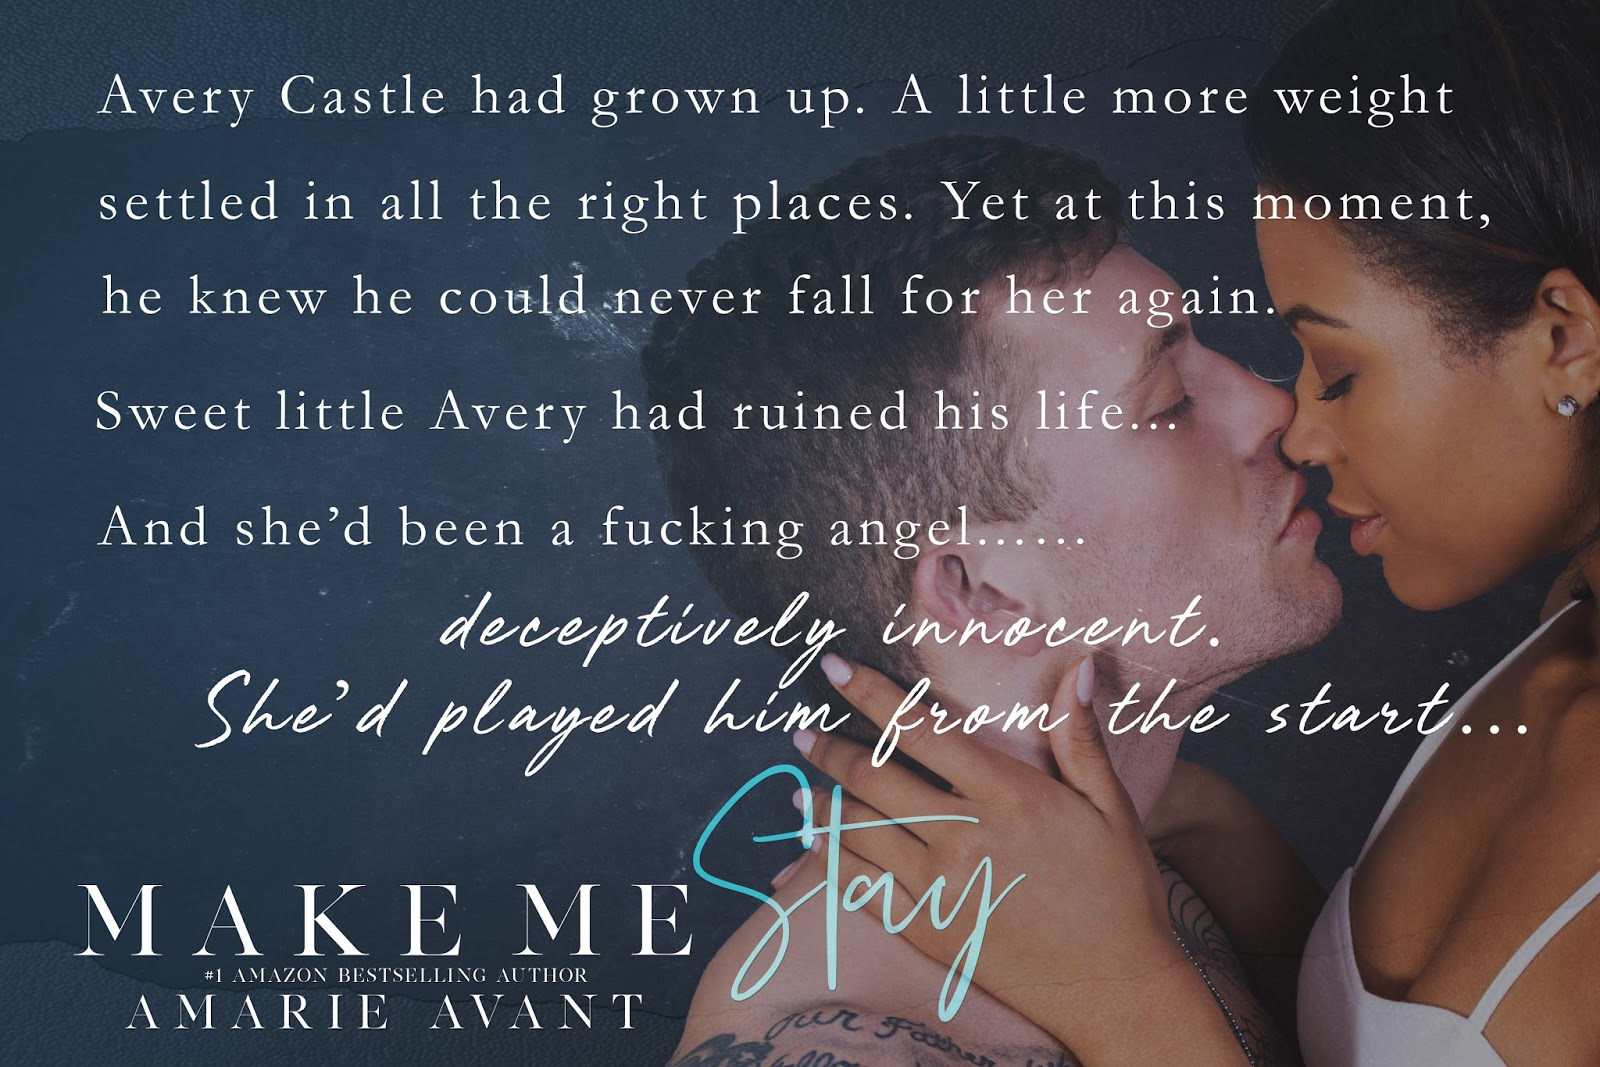 DormaineGblog: Make Me Stay: A Second Chance Romance is now live!